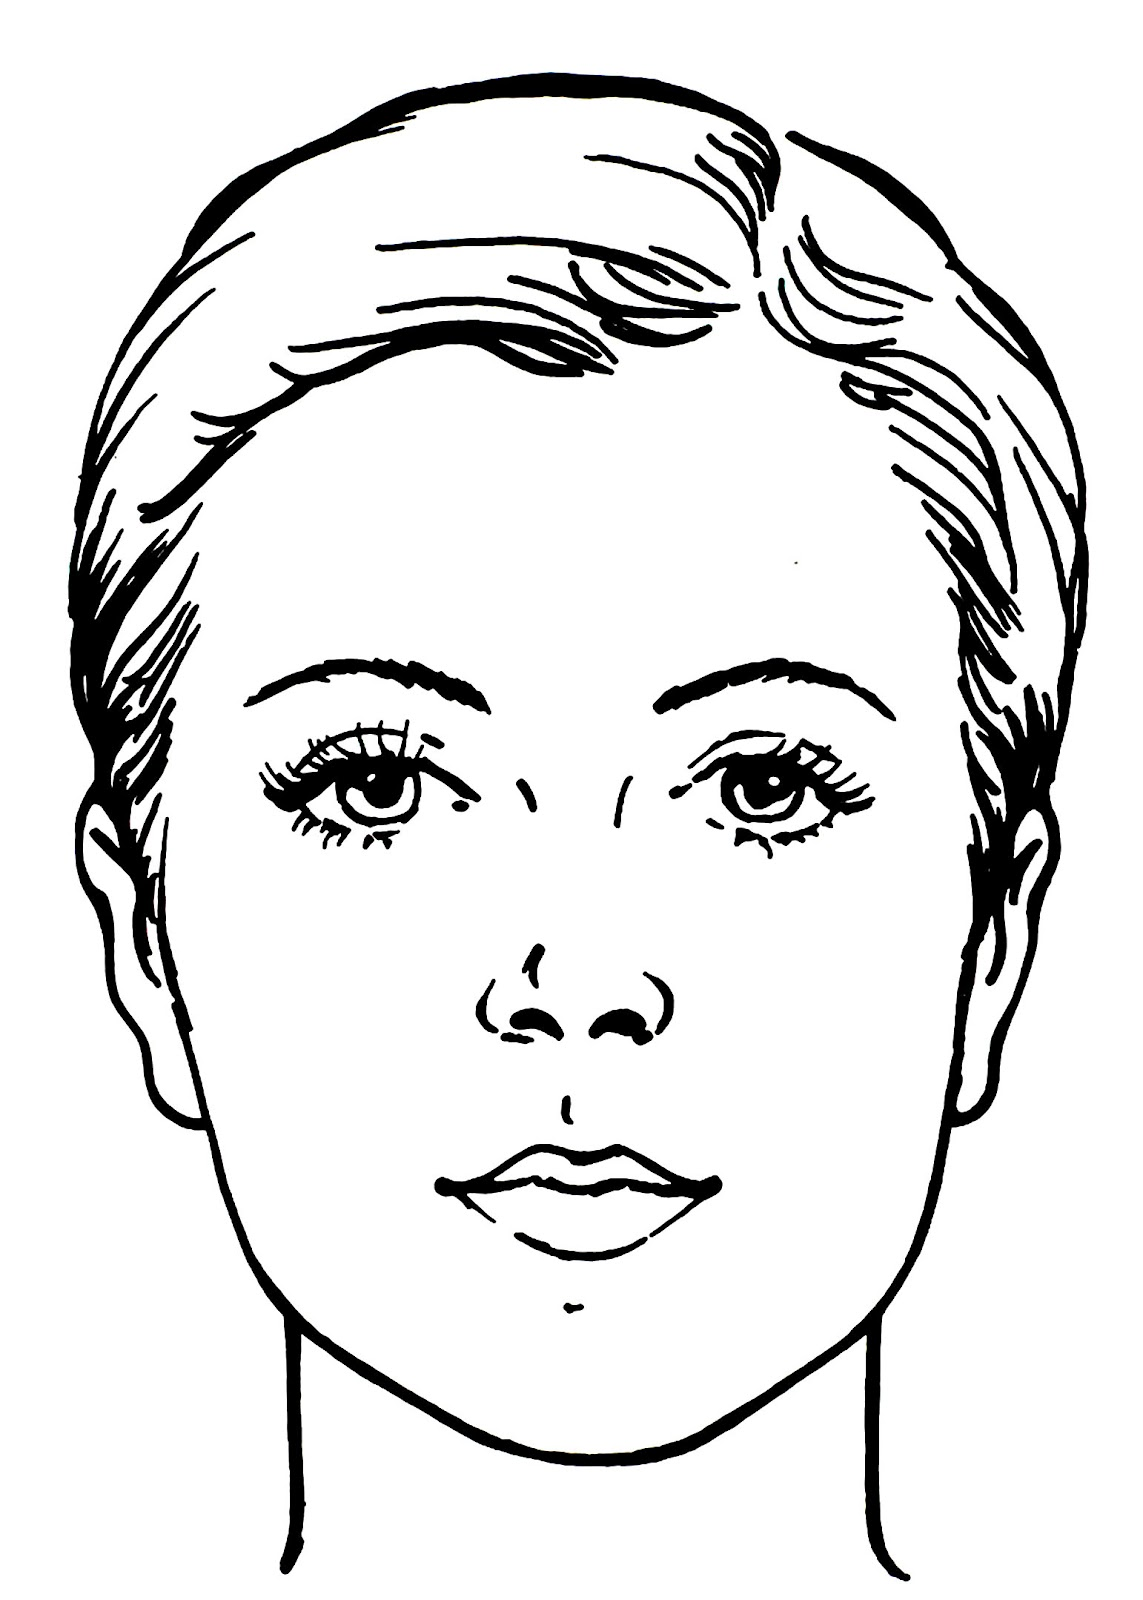 1143x1600 For Kid Coloring Pages Of Faces 81 For Drawing With Coloring Pages